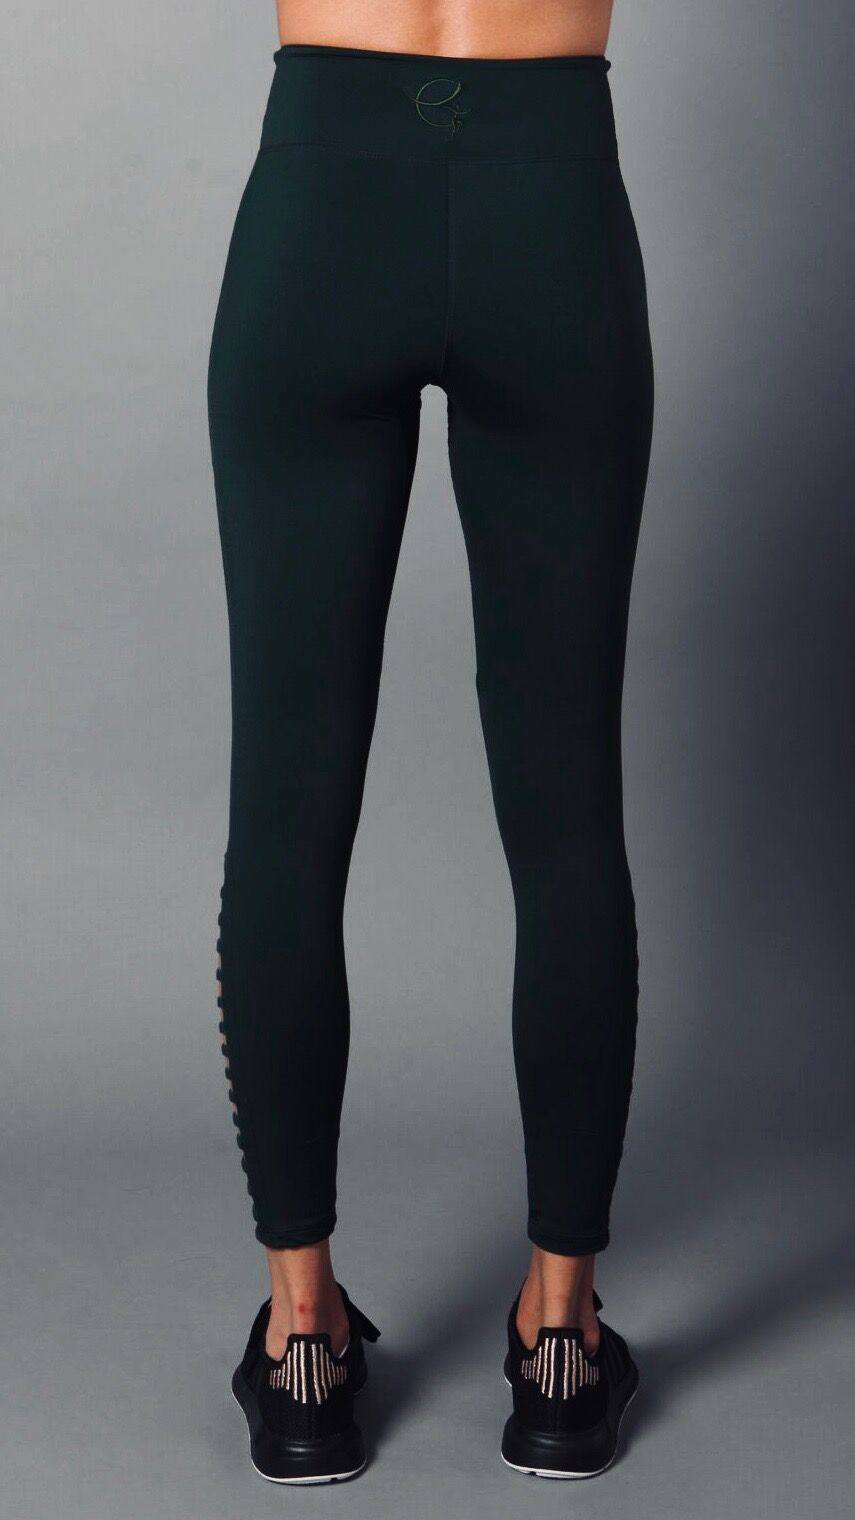 GREENWONDER JACKIE LEGGINGS L7035 - Equilibrium Activewear